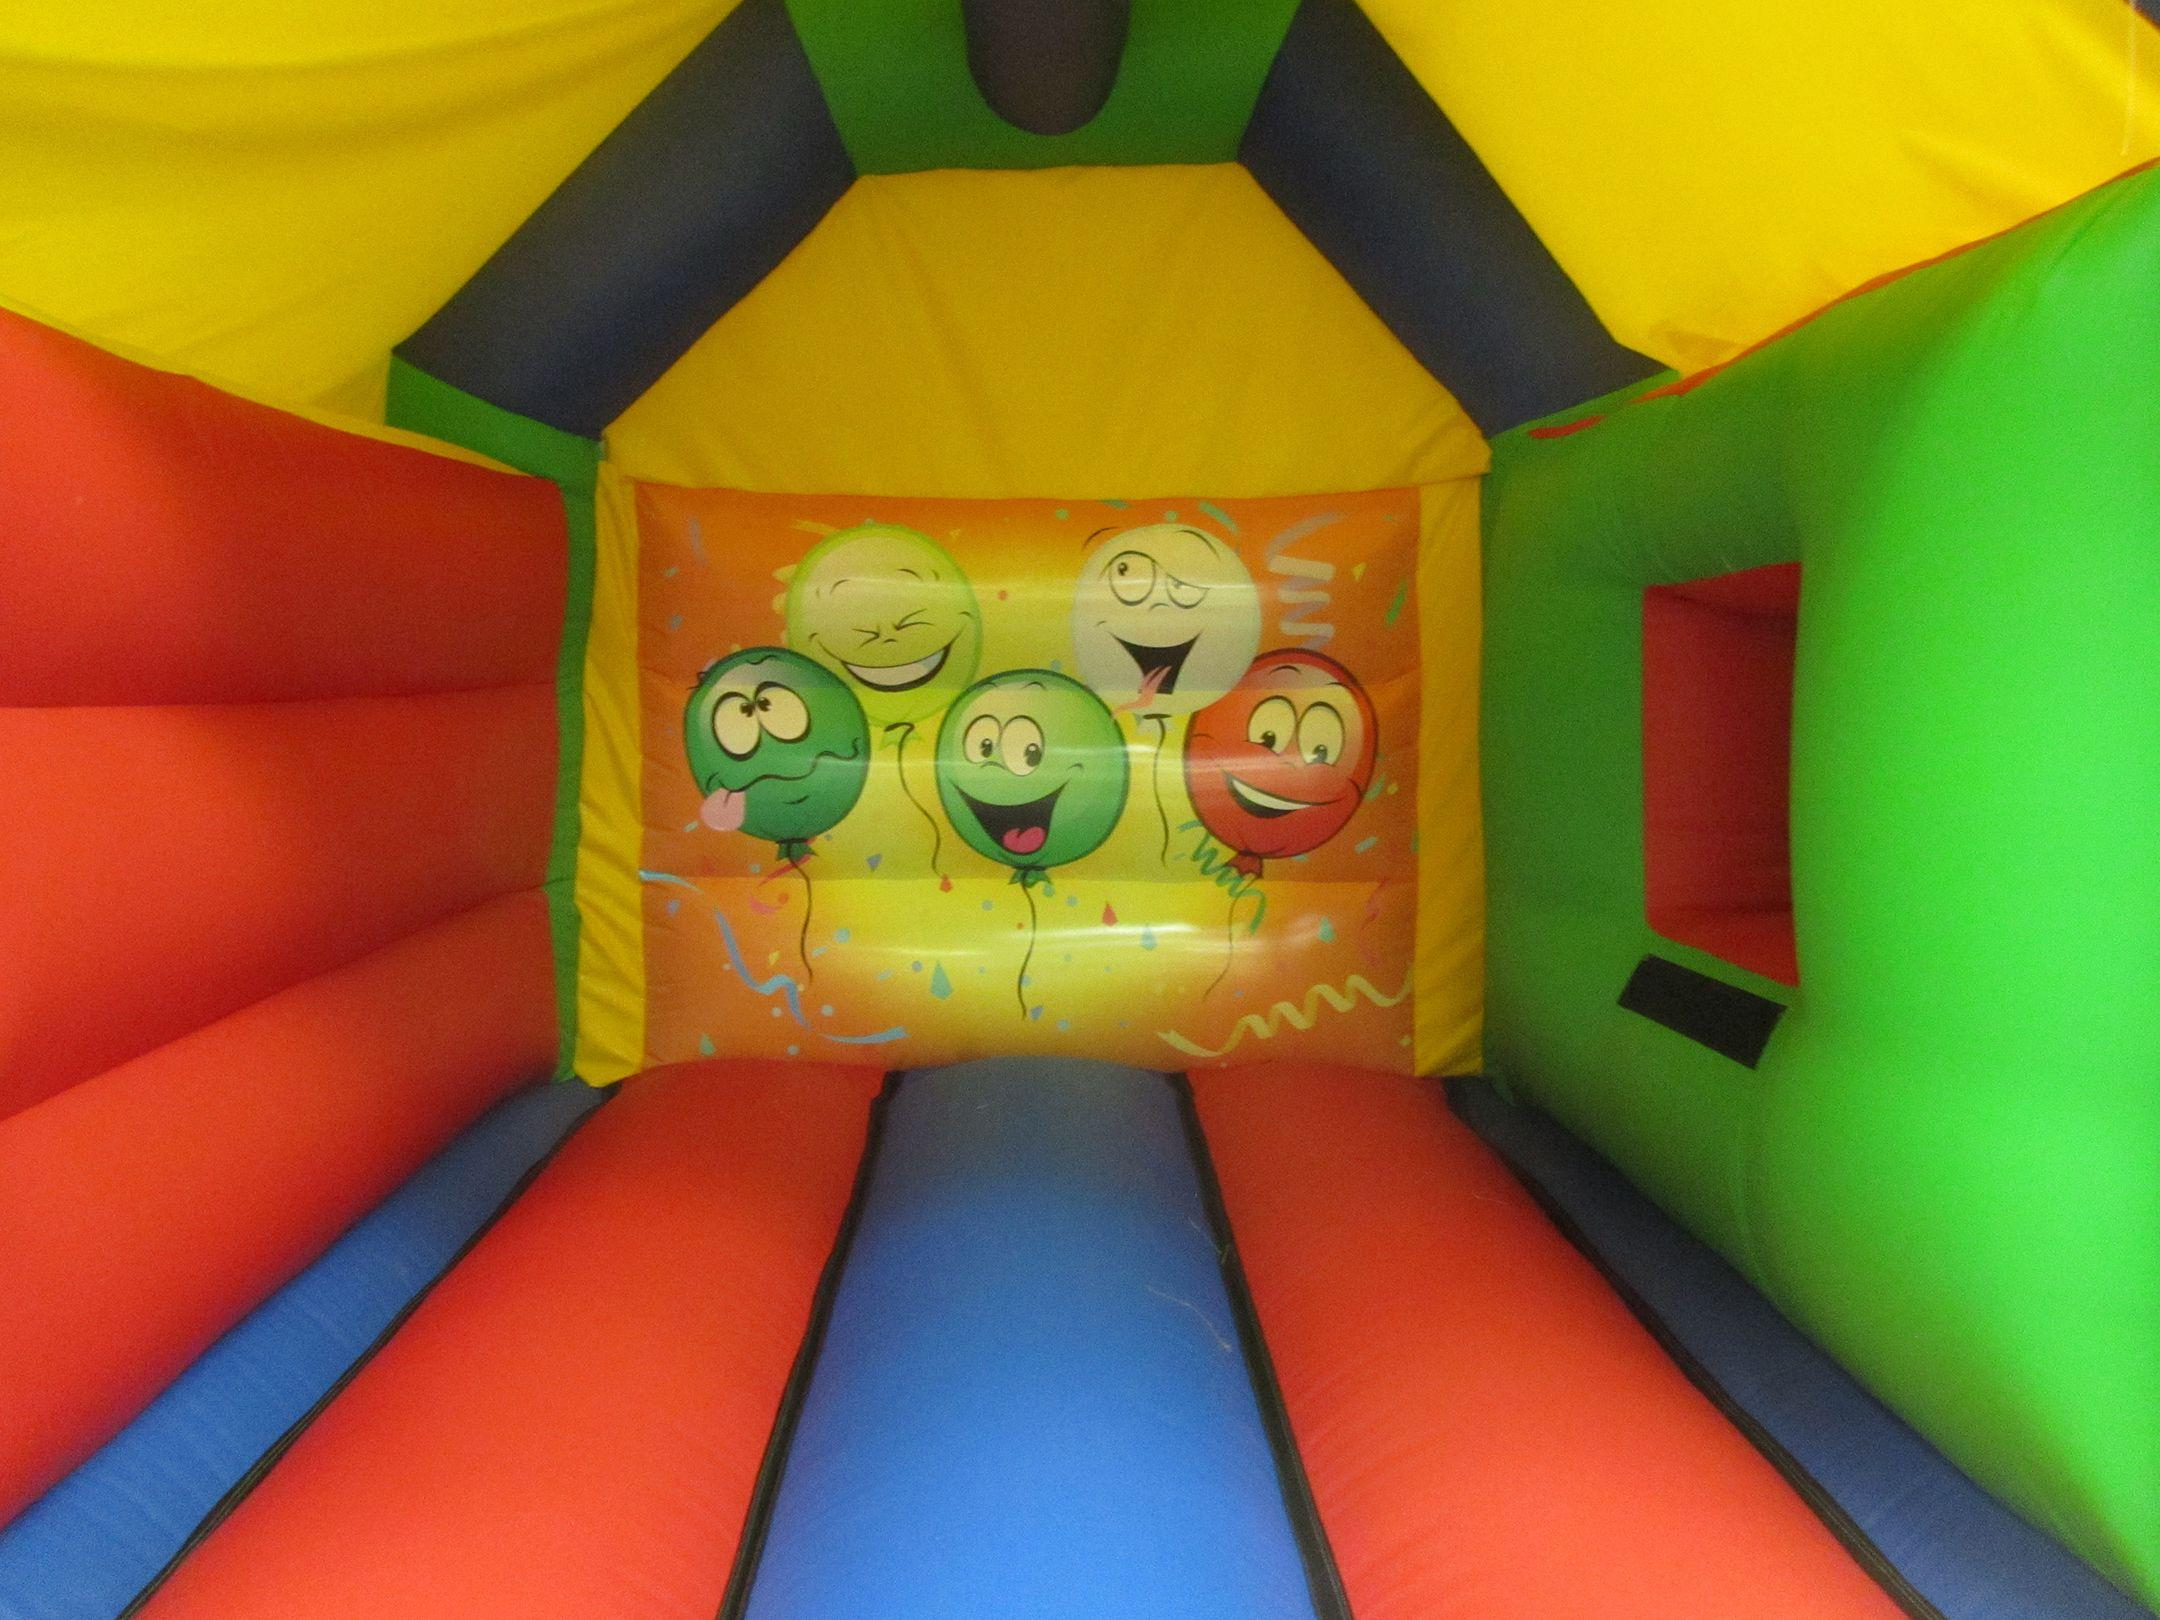 17x15 smiley face combi bouncy castle bw compressor